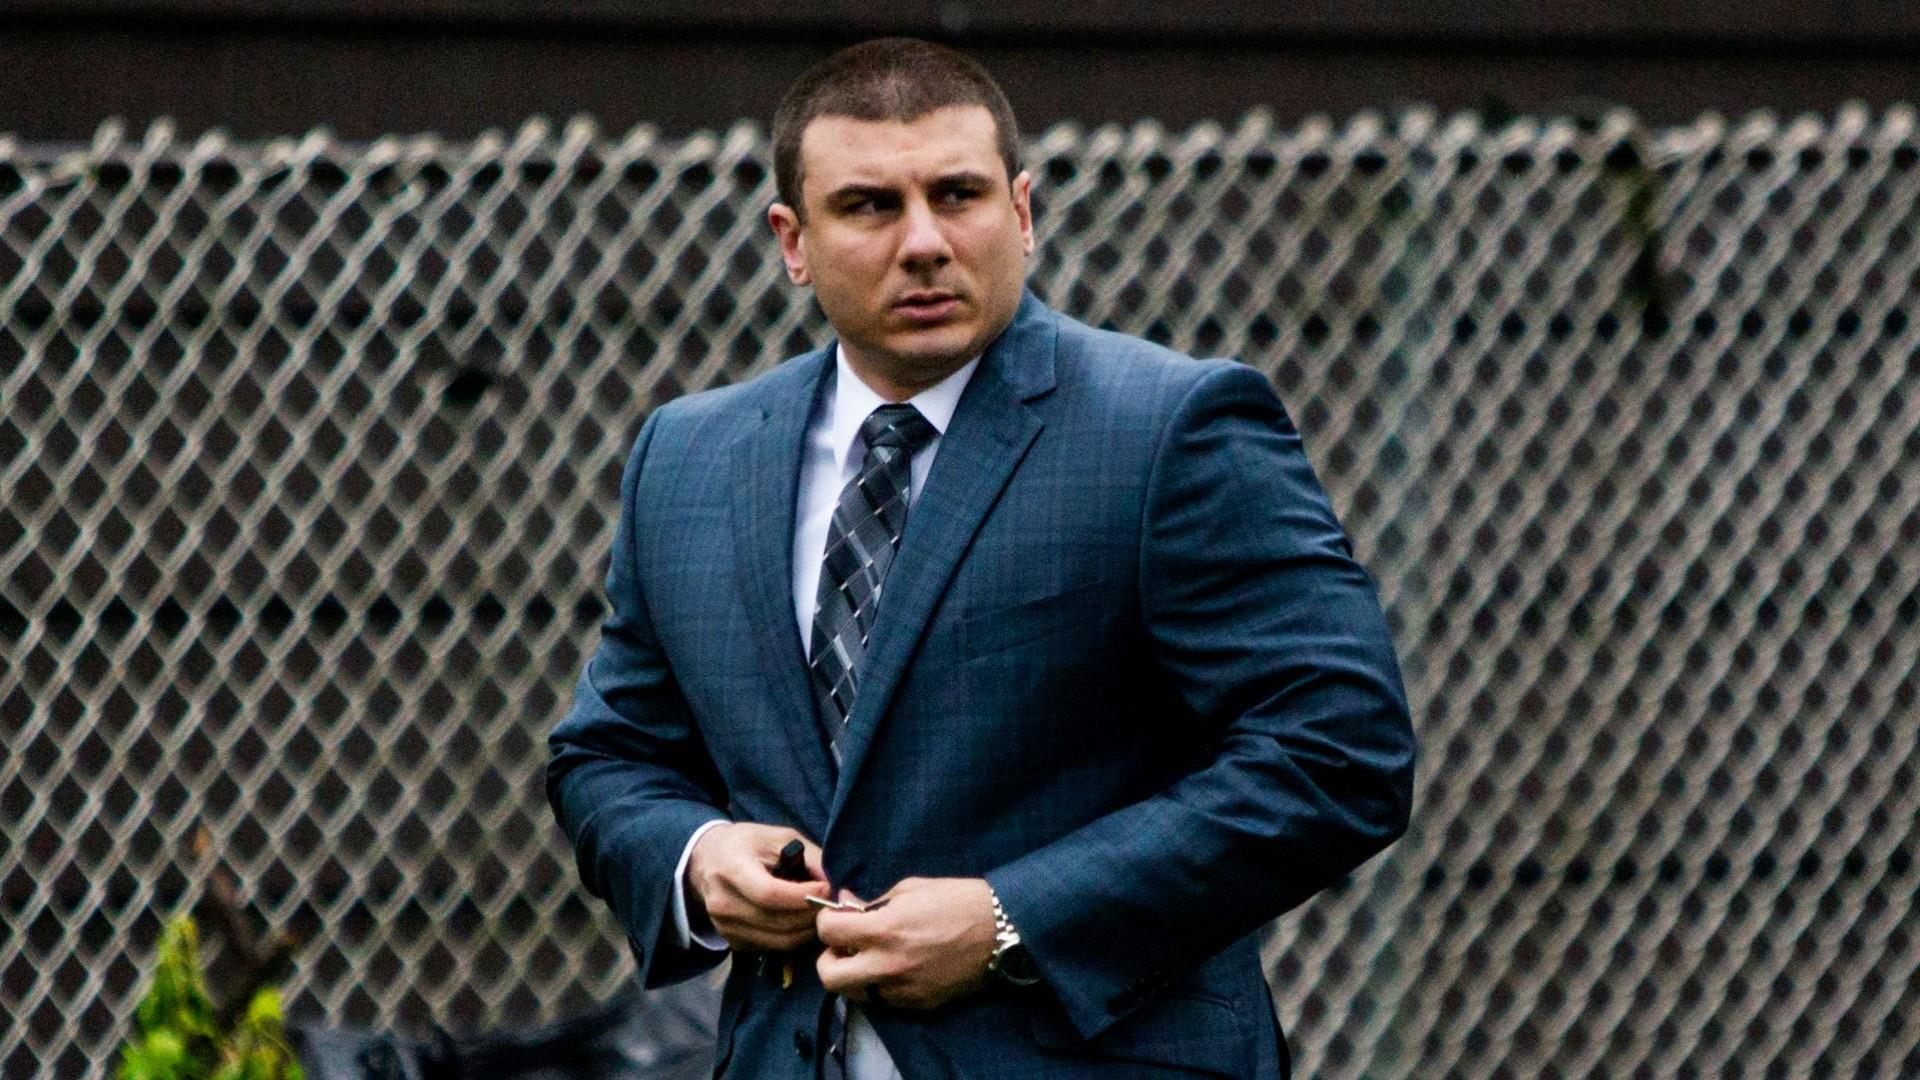 NYPD fires Officer Daniel Pantaleo for chokehold in Eric Garner's death